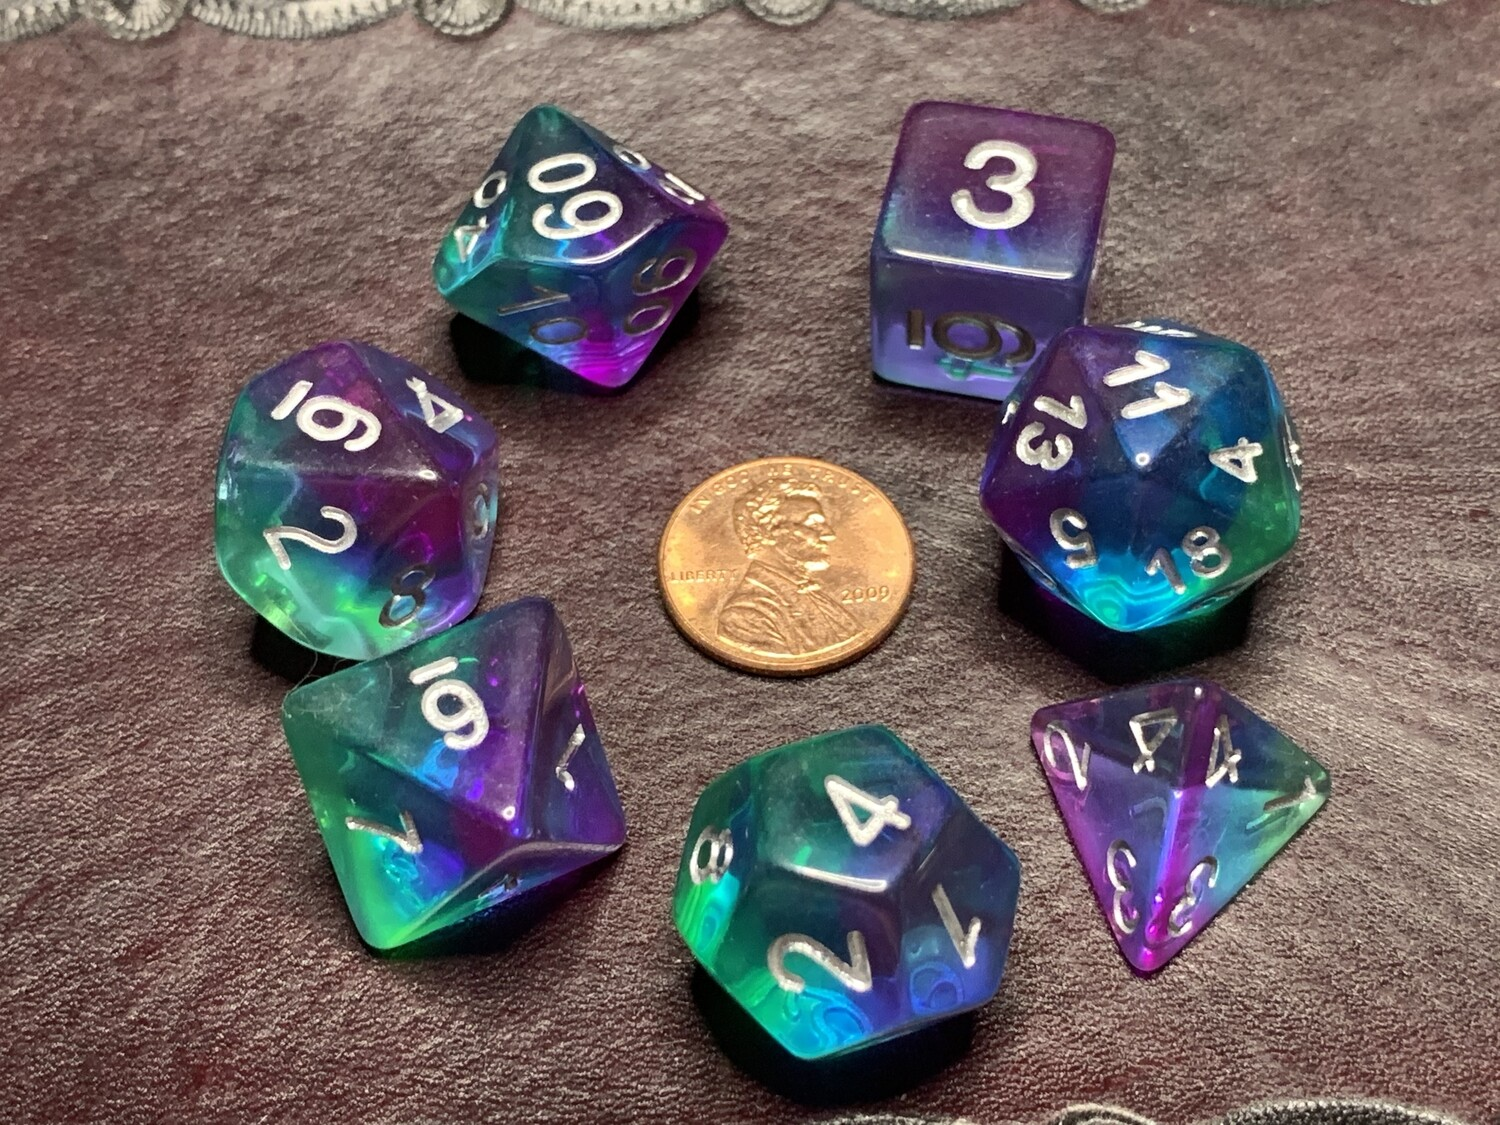 Standard Polyhedral 7 Die Dice Set - Transparent Tri-layer Green Blue Purple